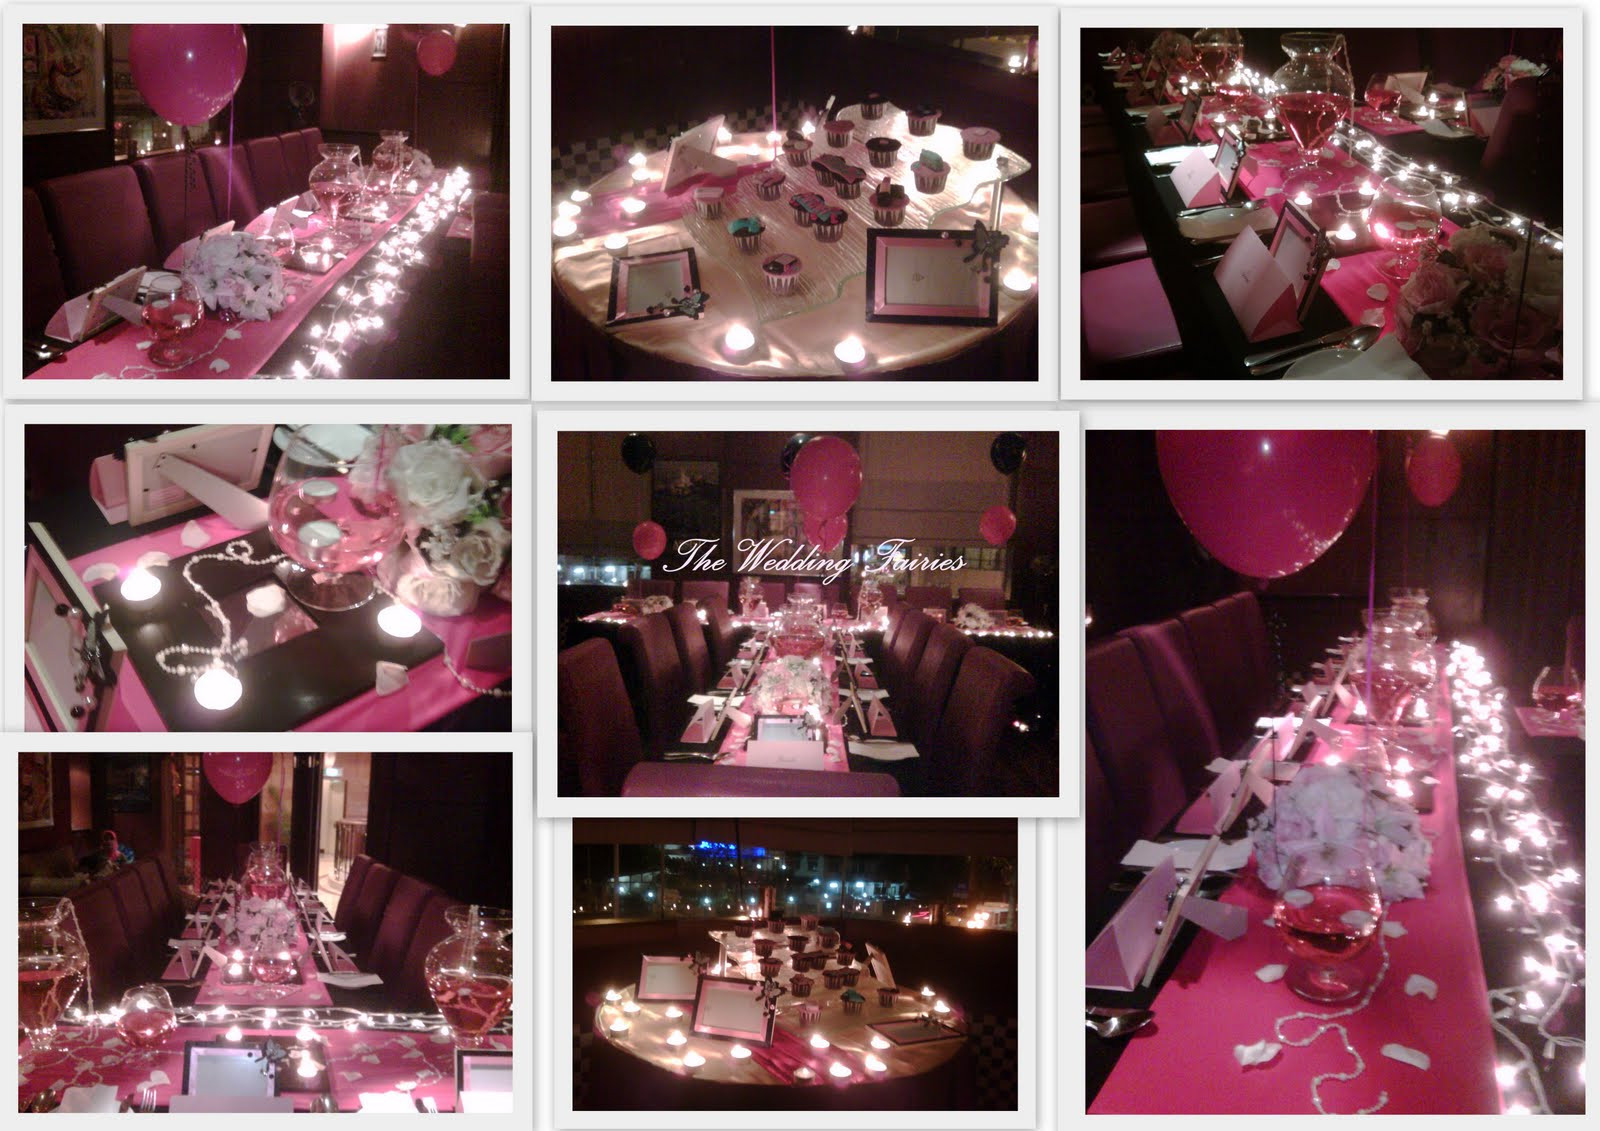 Best ideas about Birthday Dinner Ideas For Adults . Save or Pin The Wedding Fairies June 2010 Now.